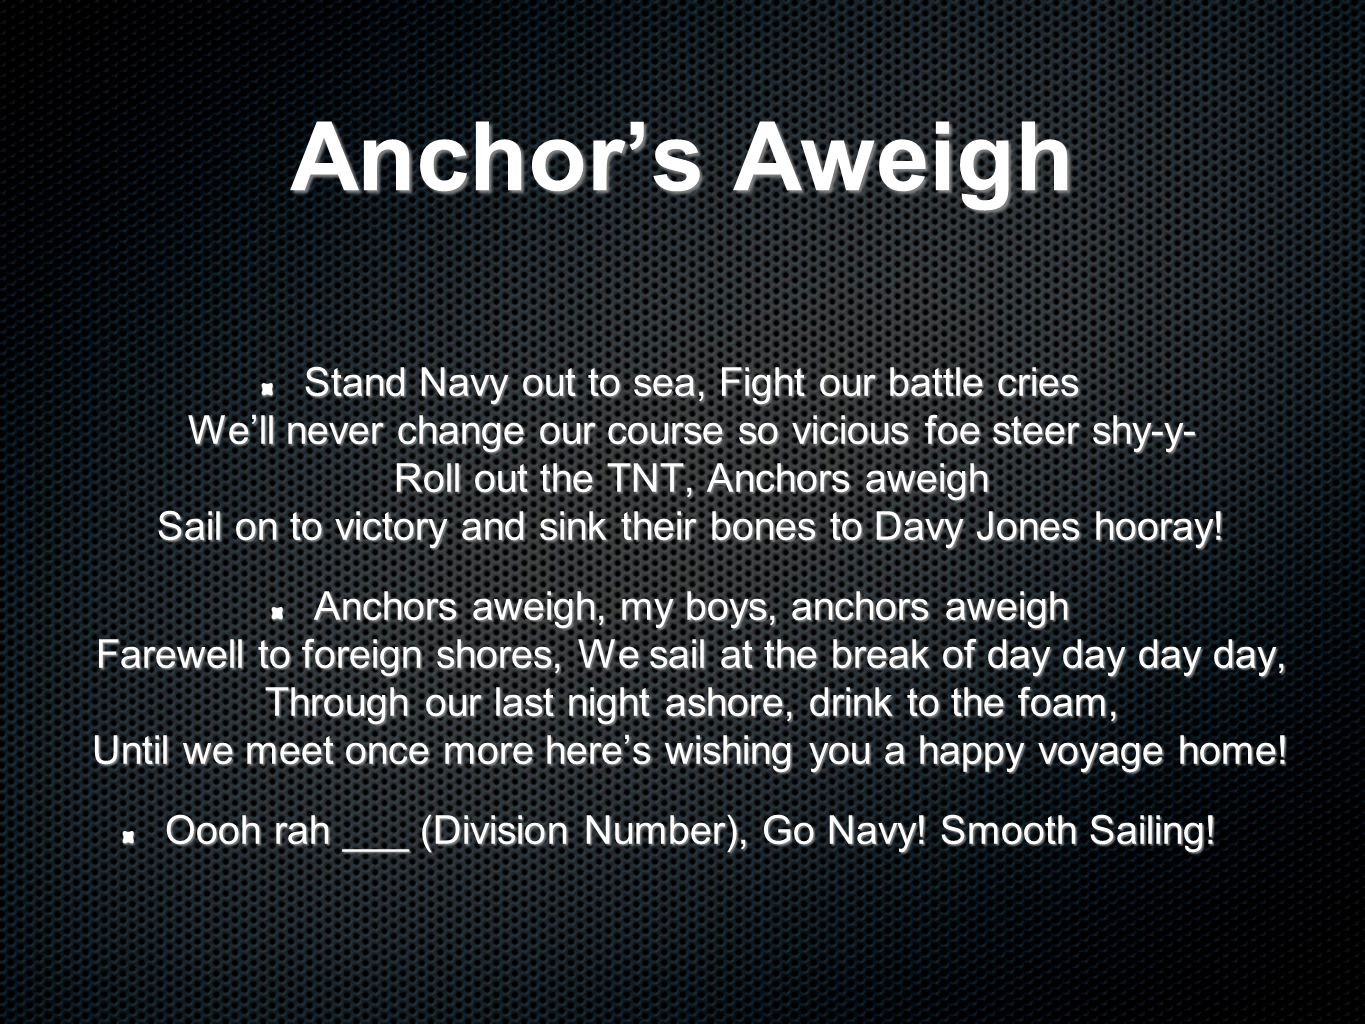 Oooh rah ___ (Division Number), Go Navy! Smooth Sailing!